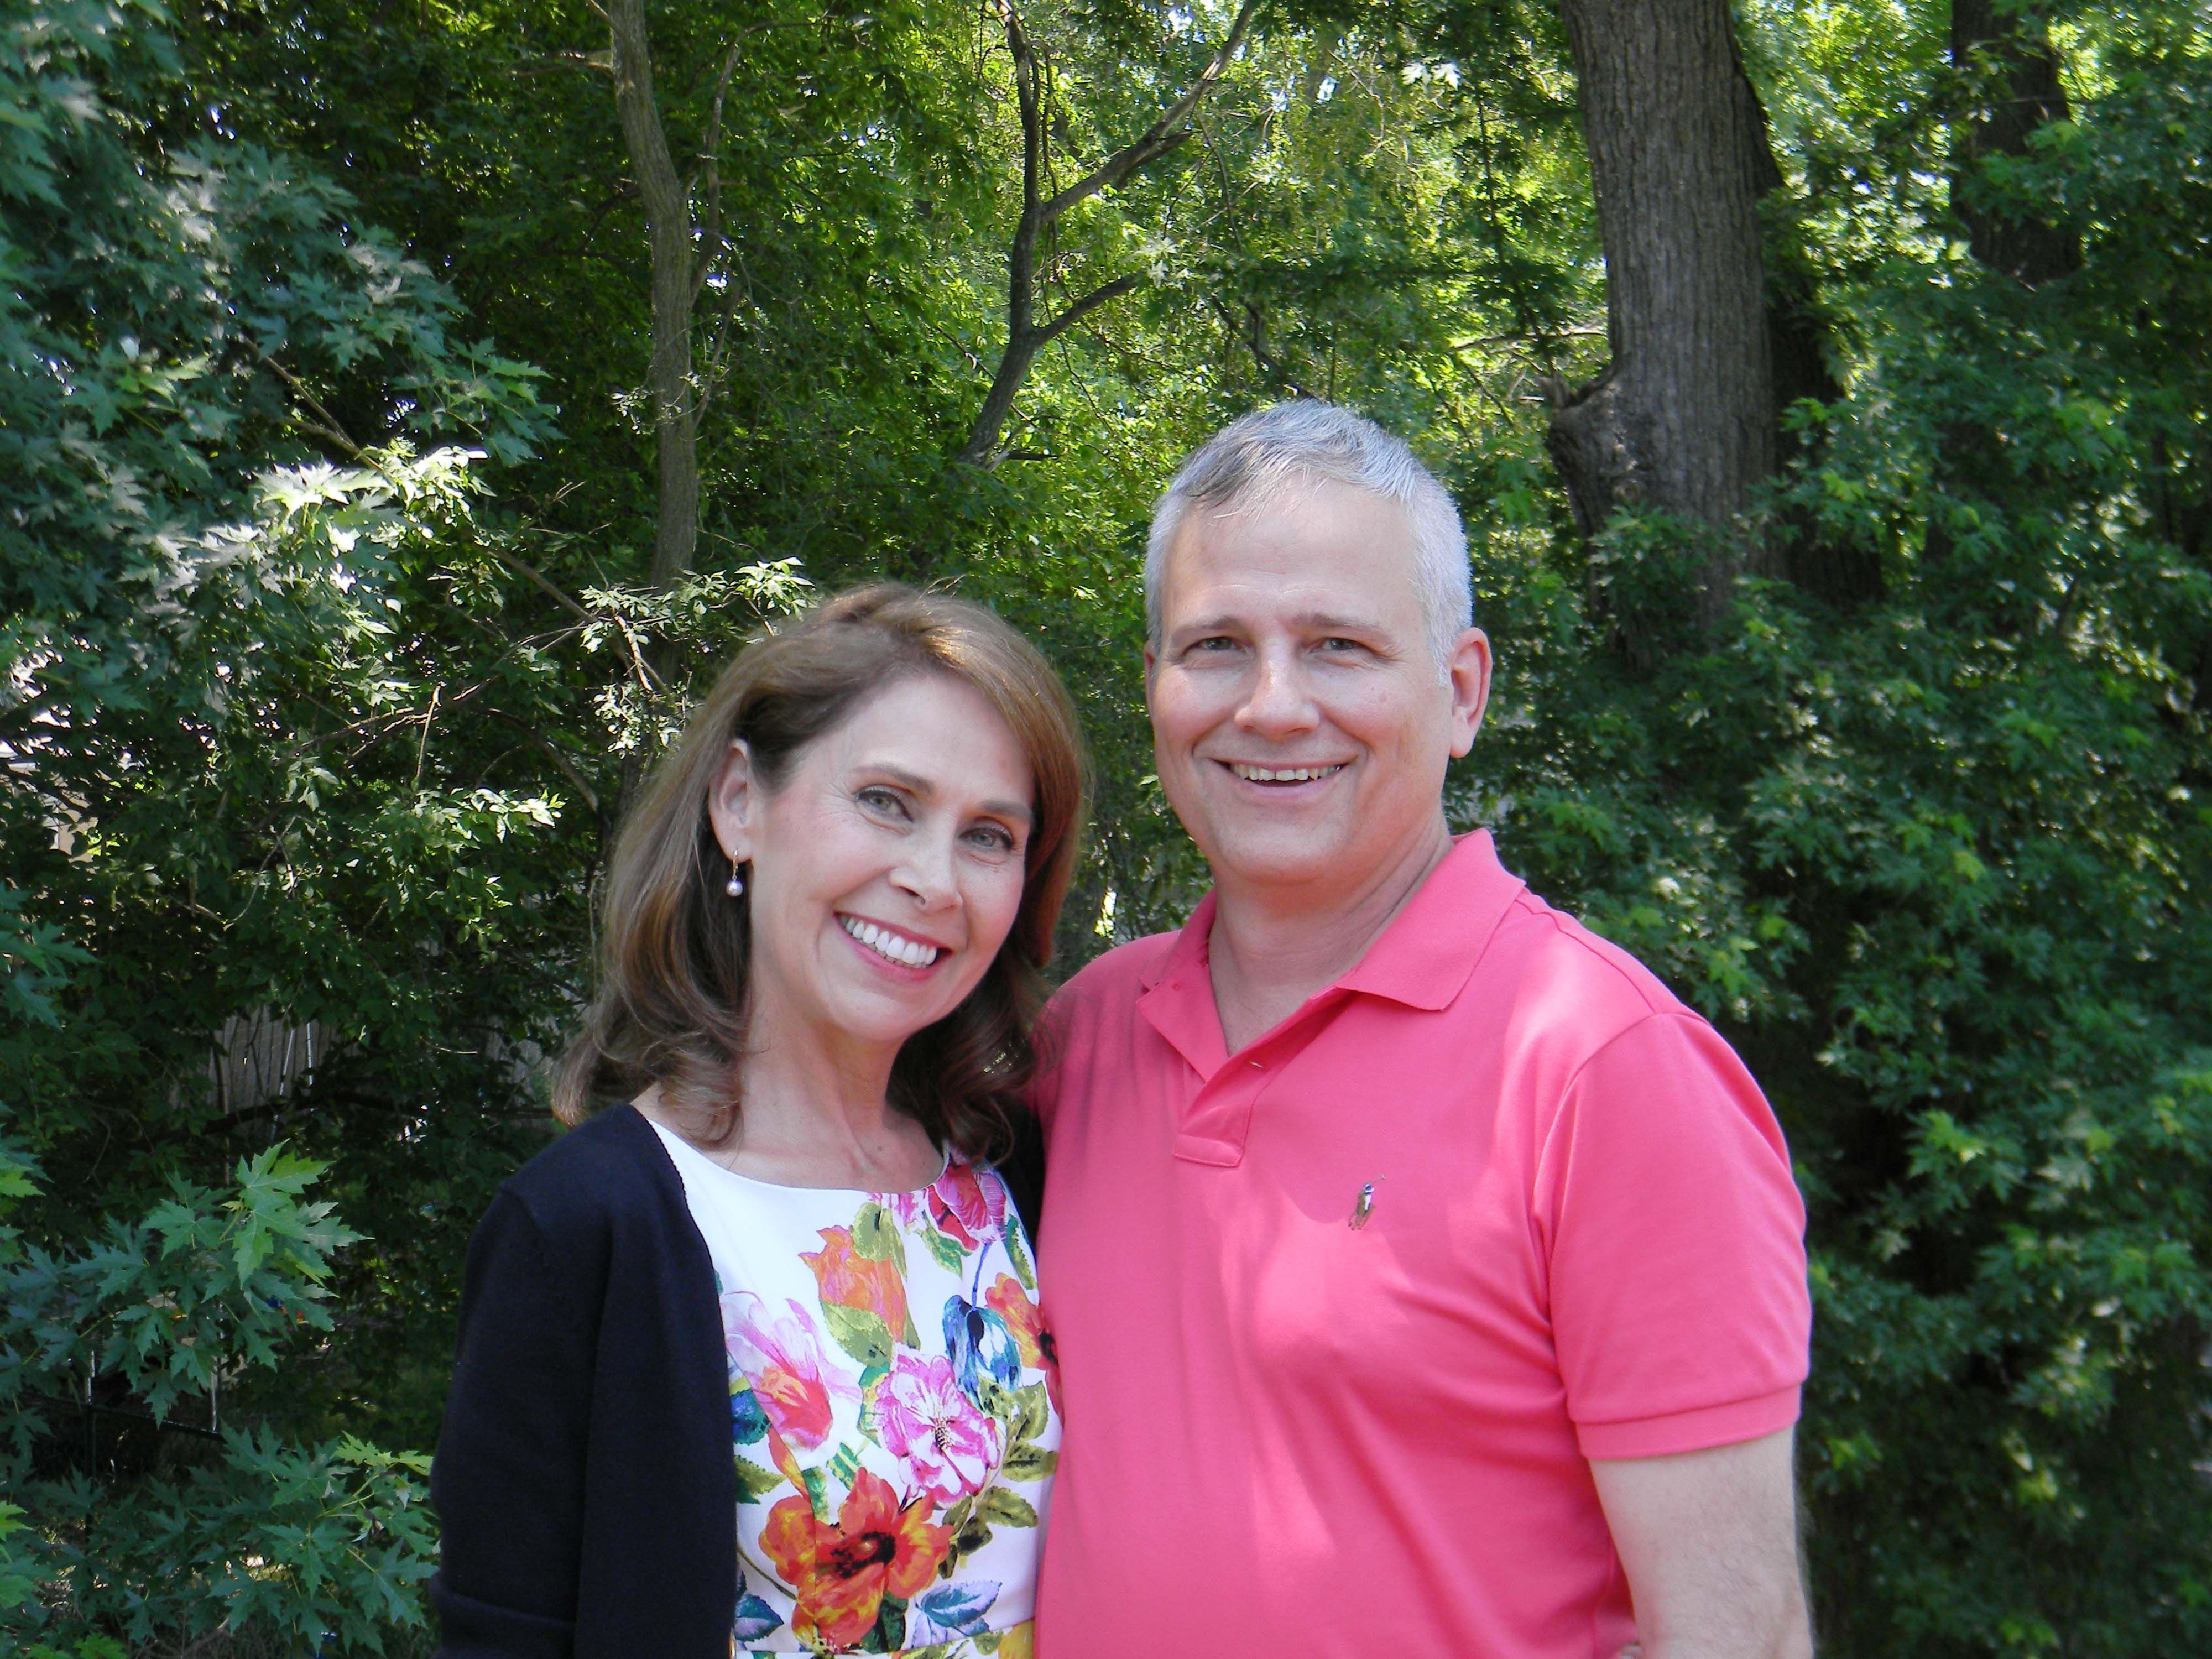 New Missionary Candidates helping GMI Reach its Vision 2023 Goals By 2023 GMI wants to open a total eight new fields, send 16 U.S.-based families or individuals, and send 10 international missionar…